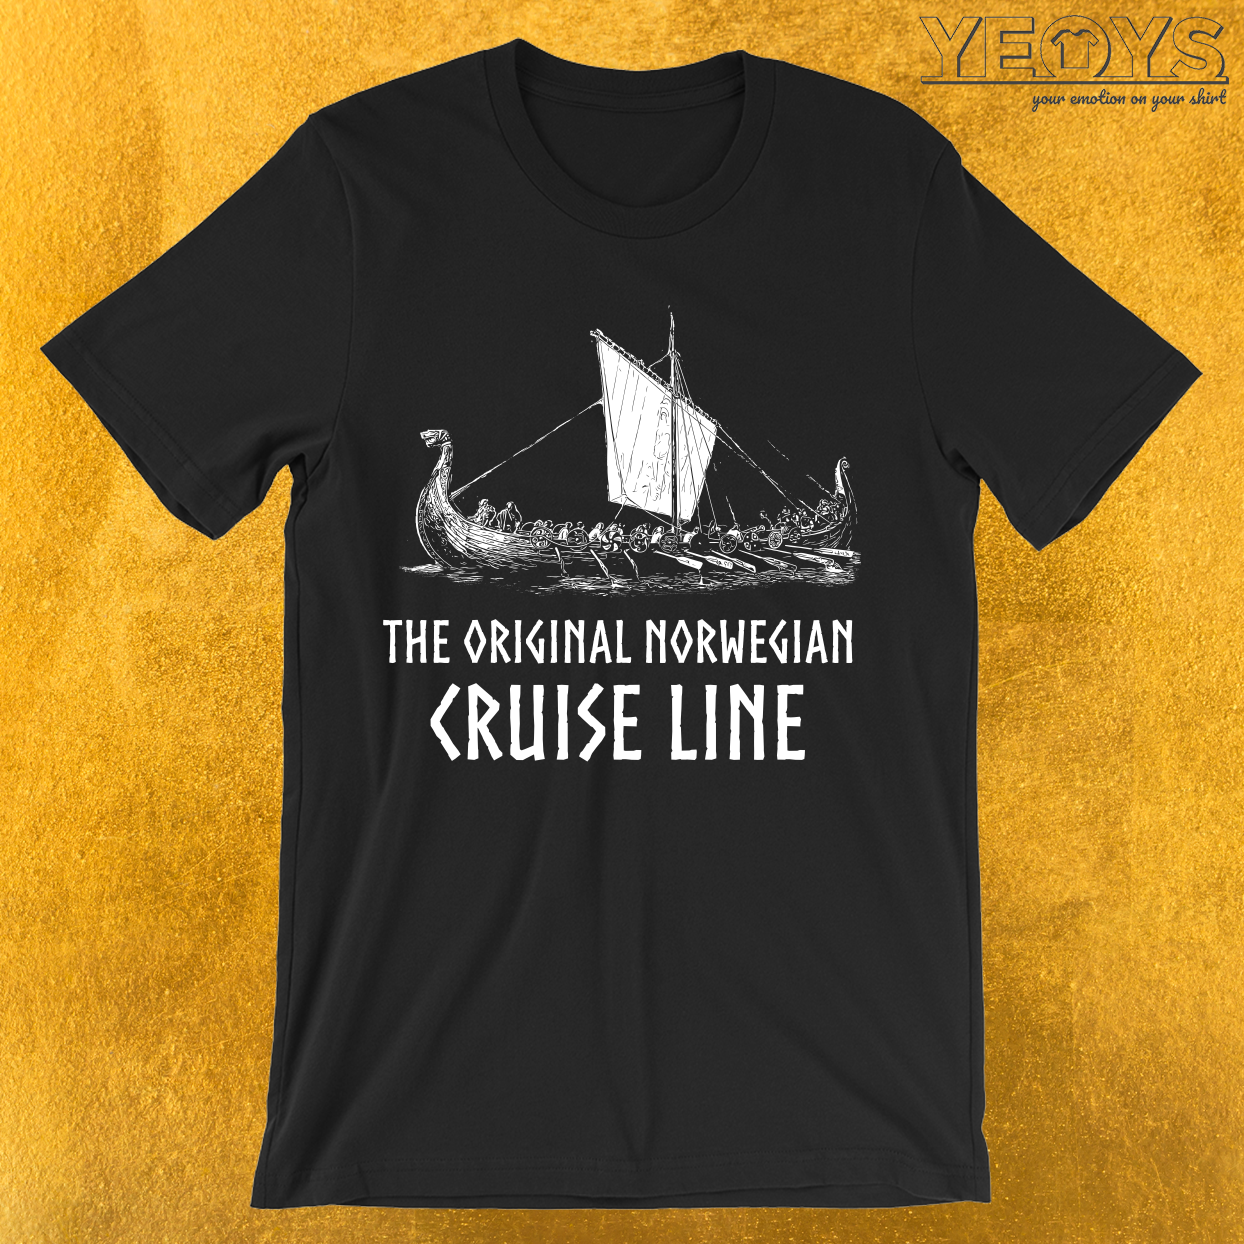 Viking Ship Cruise Line T-Shirt